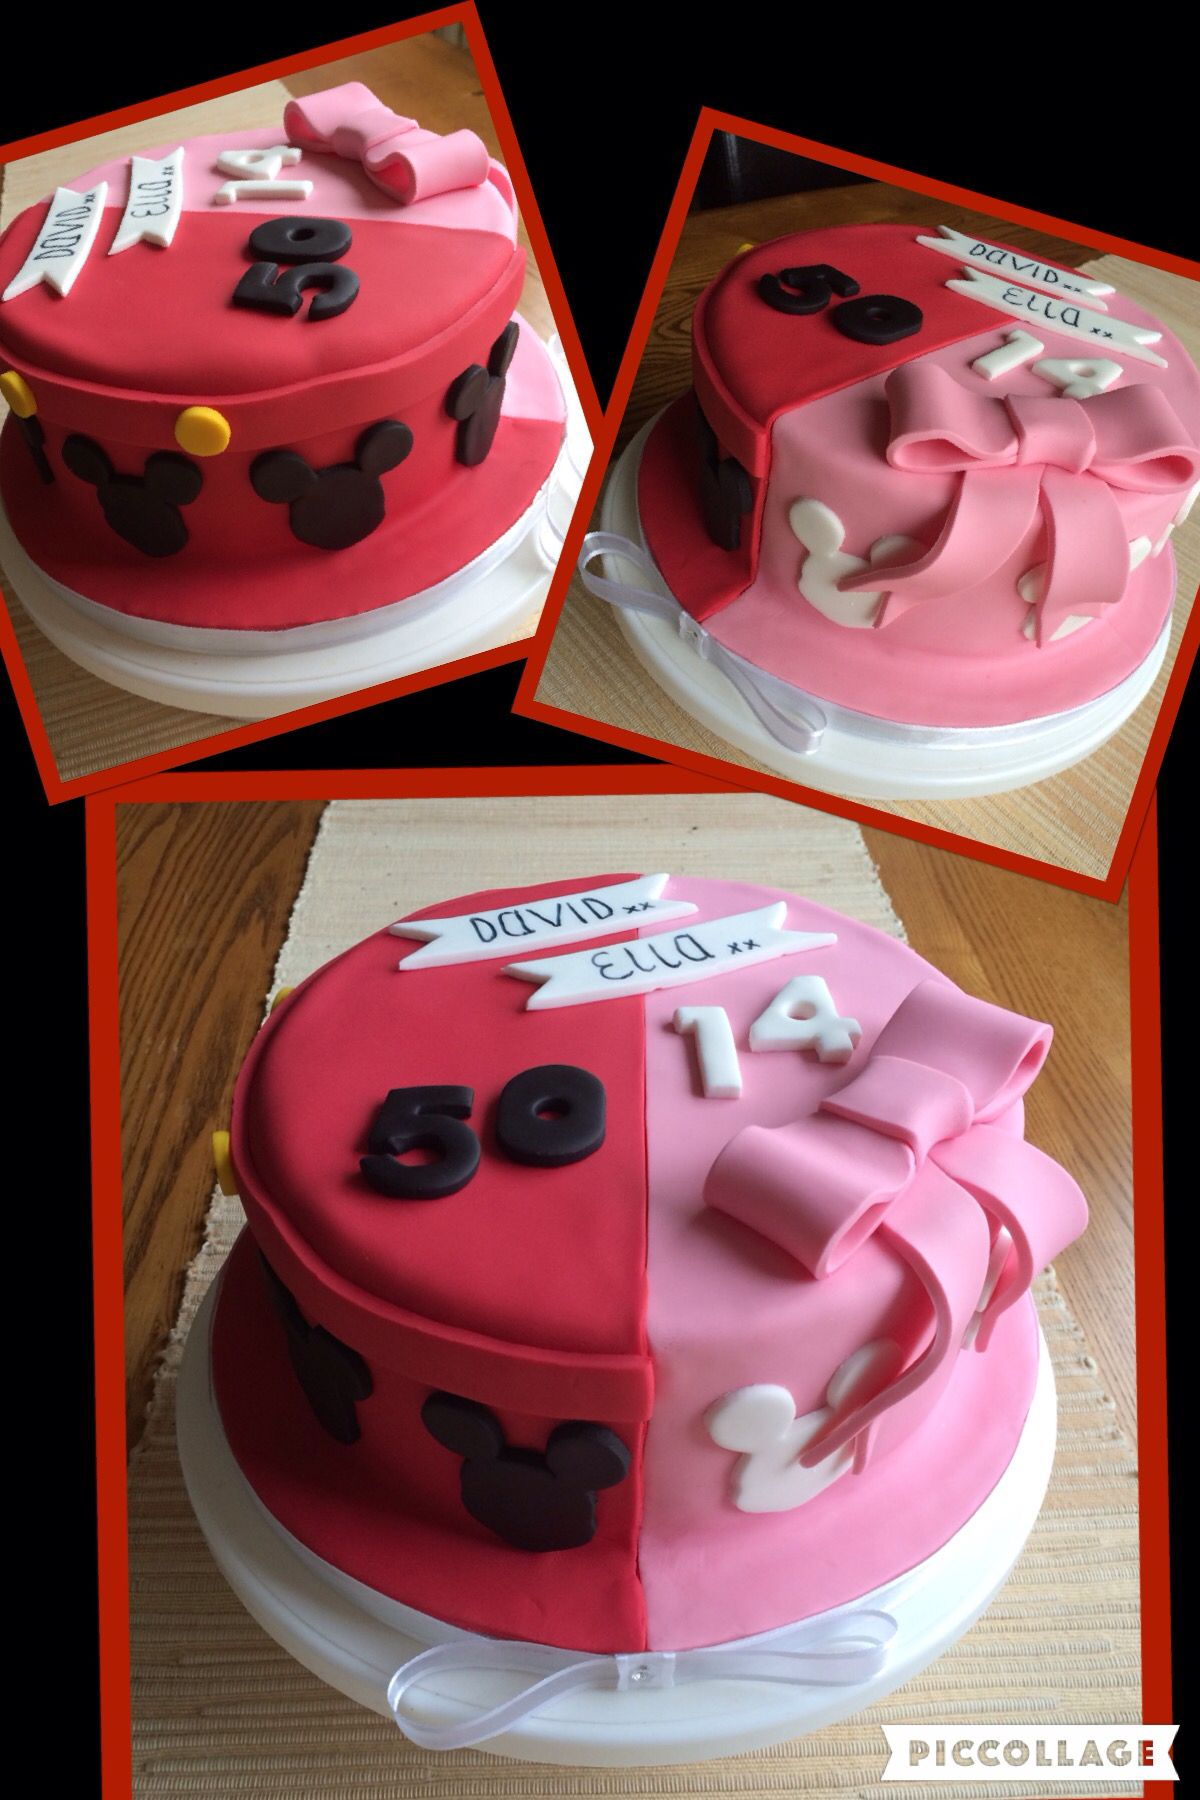 Half Mickeyhalf Minnie birthday cake for father and daughter Zach